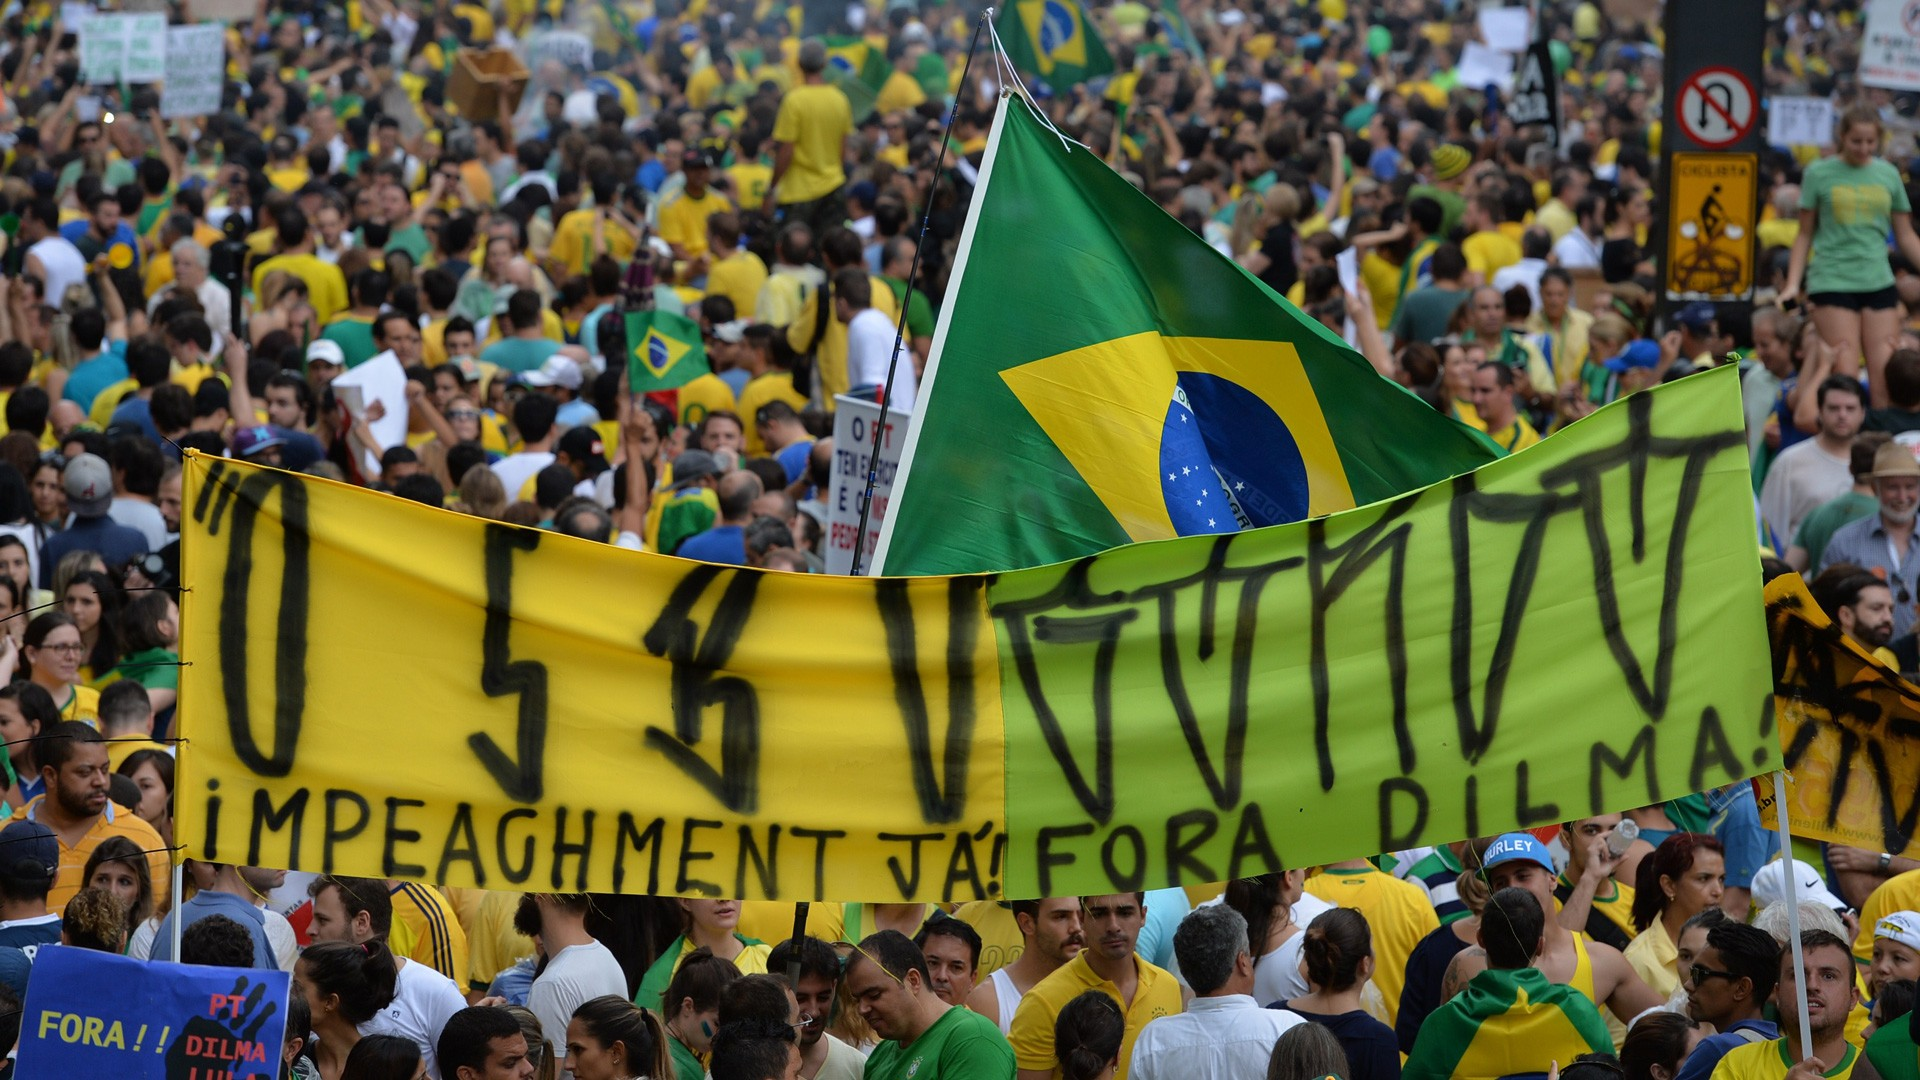 Brazil ETFs Sink After Doubtful Impeachment Vote